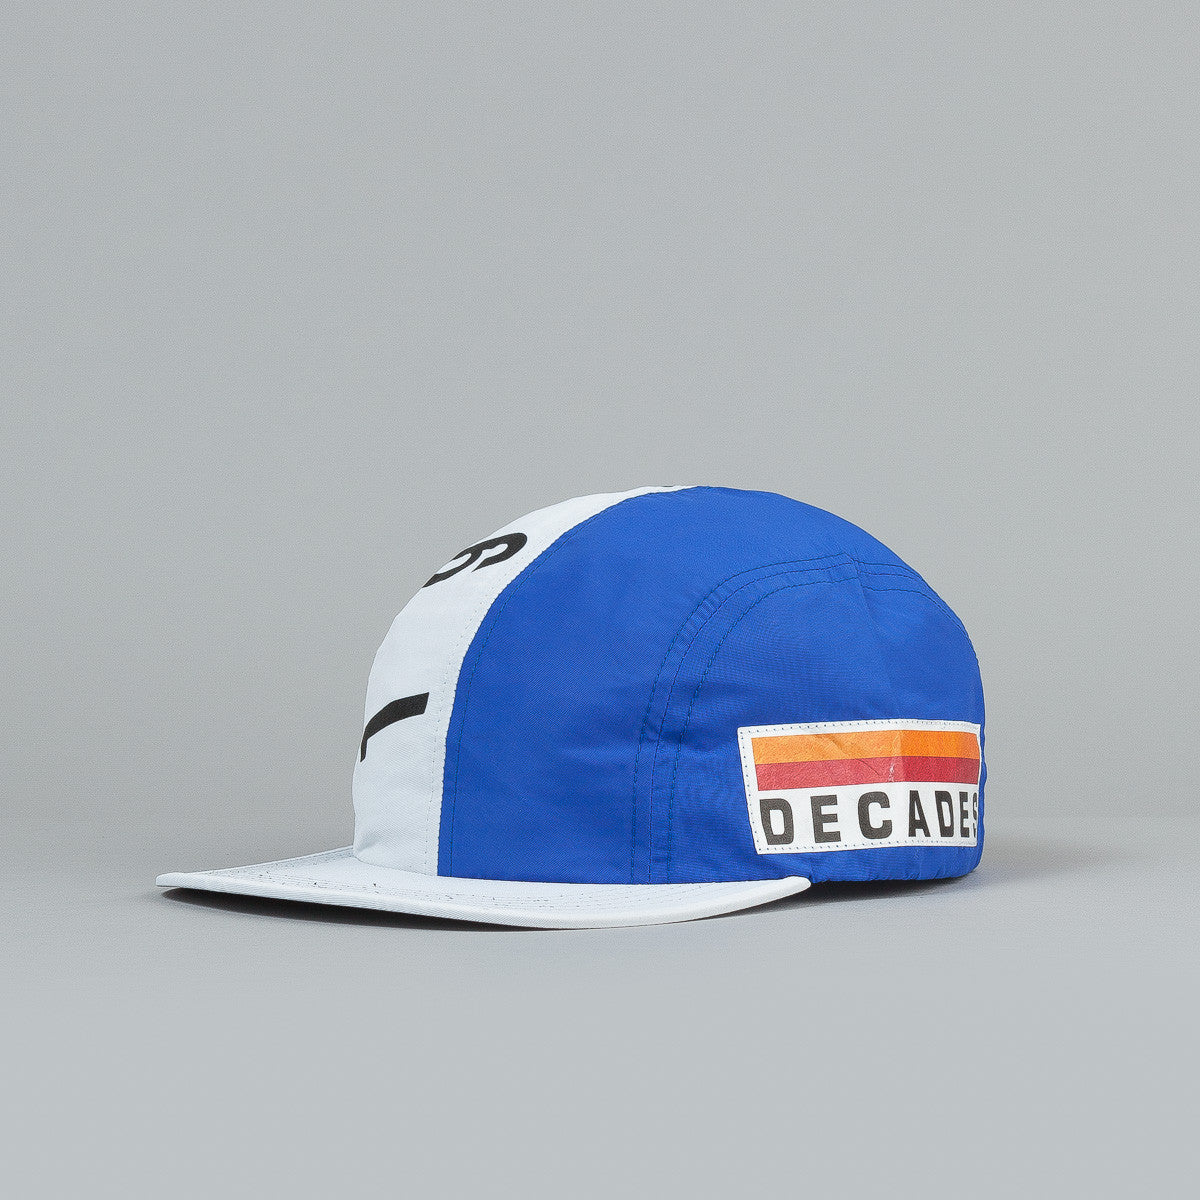 The Decades Summer Games 4 Panel Cap